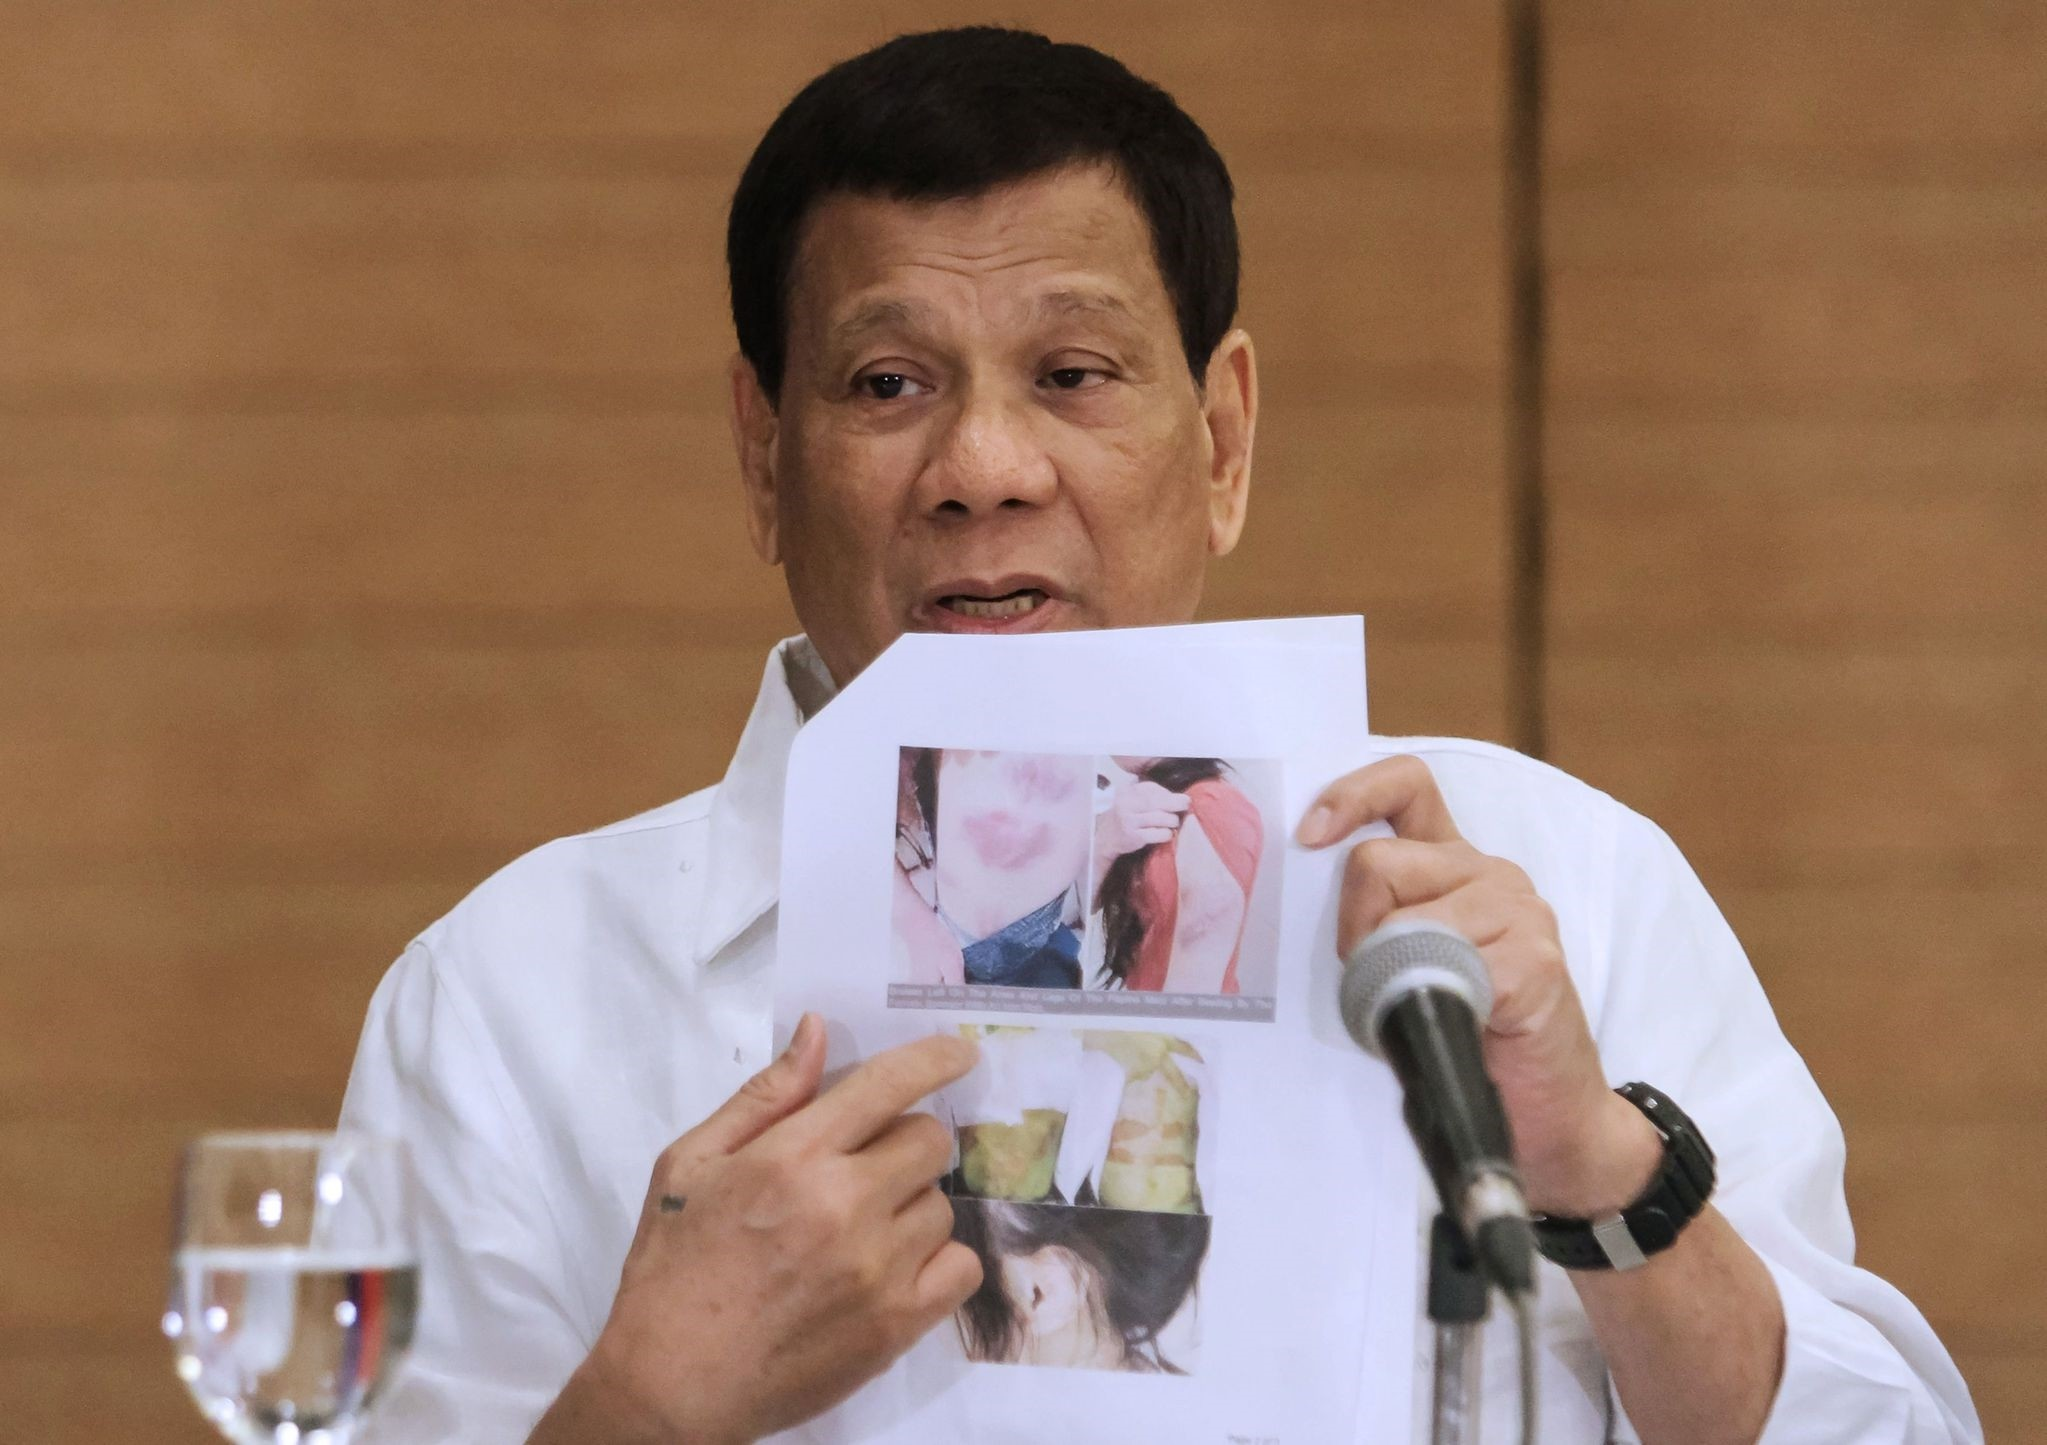 Philippine President Rodrigo Duterte shows a photo of a Filipina worker in Kuwait, of whom he said she had been ,roasted like a pig,, during a press conference in Davao City, in the southern island of Mindanao on February 9, 2018. (AFP Photo)